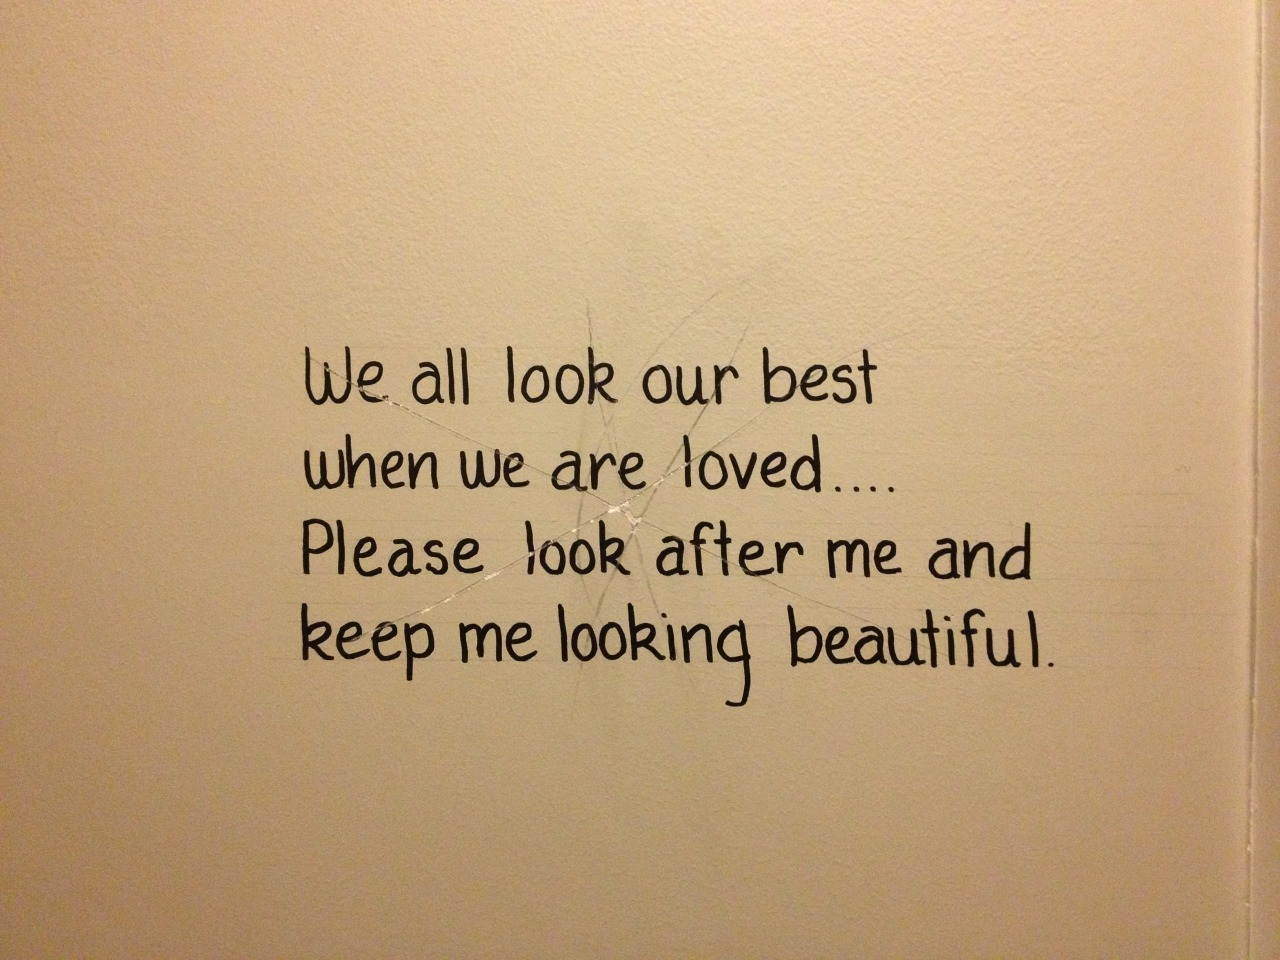 Found this in a bathroom wall recently.  I love how valid this statement is to objects or places we adore, but how it ultimately becomes real and true when applied to human relationships.